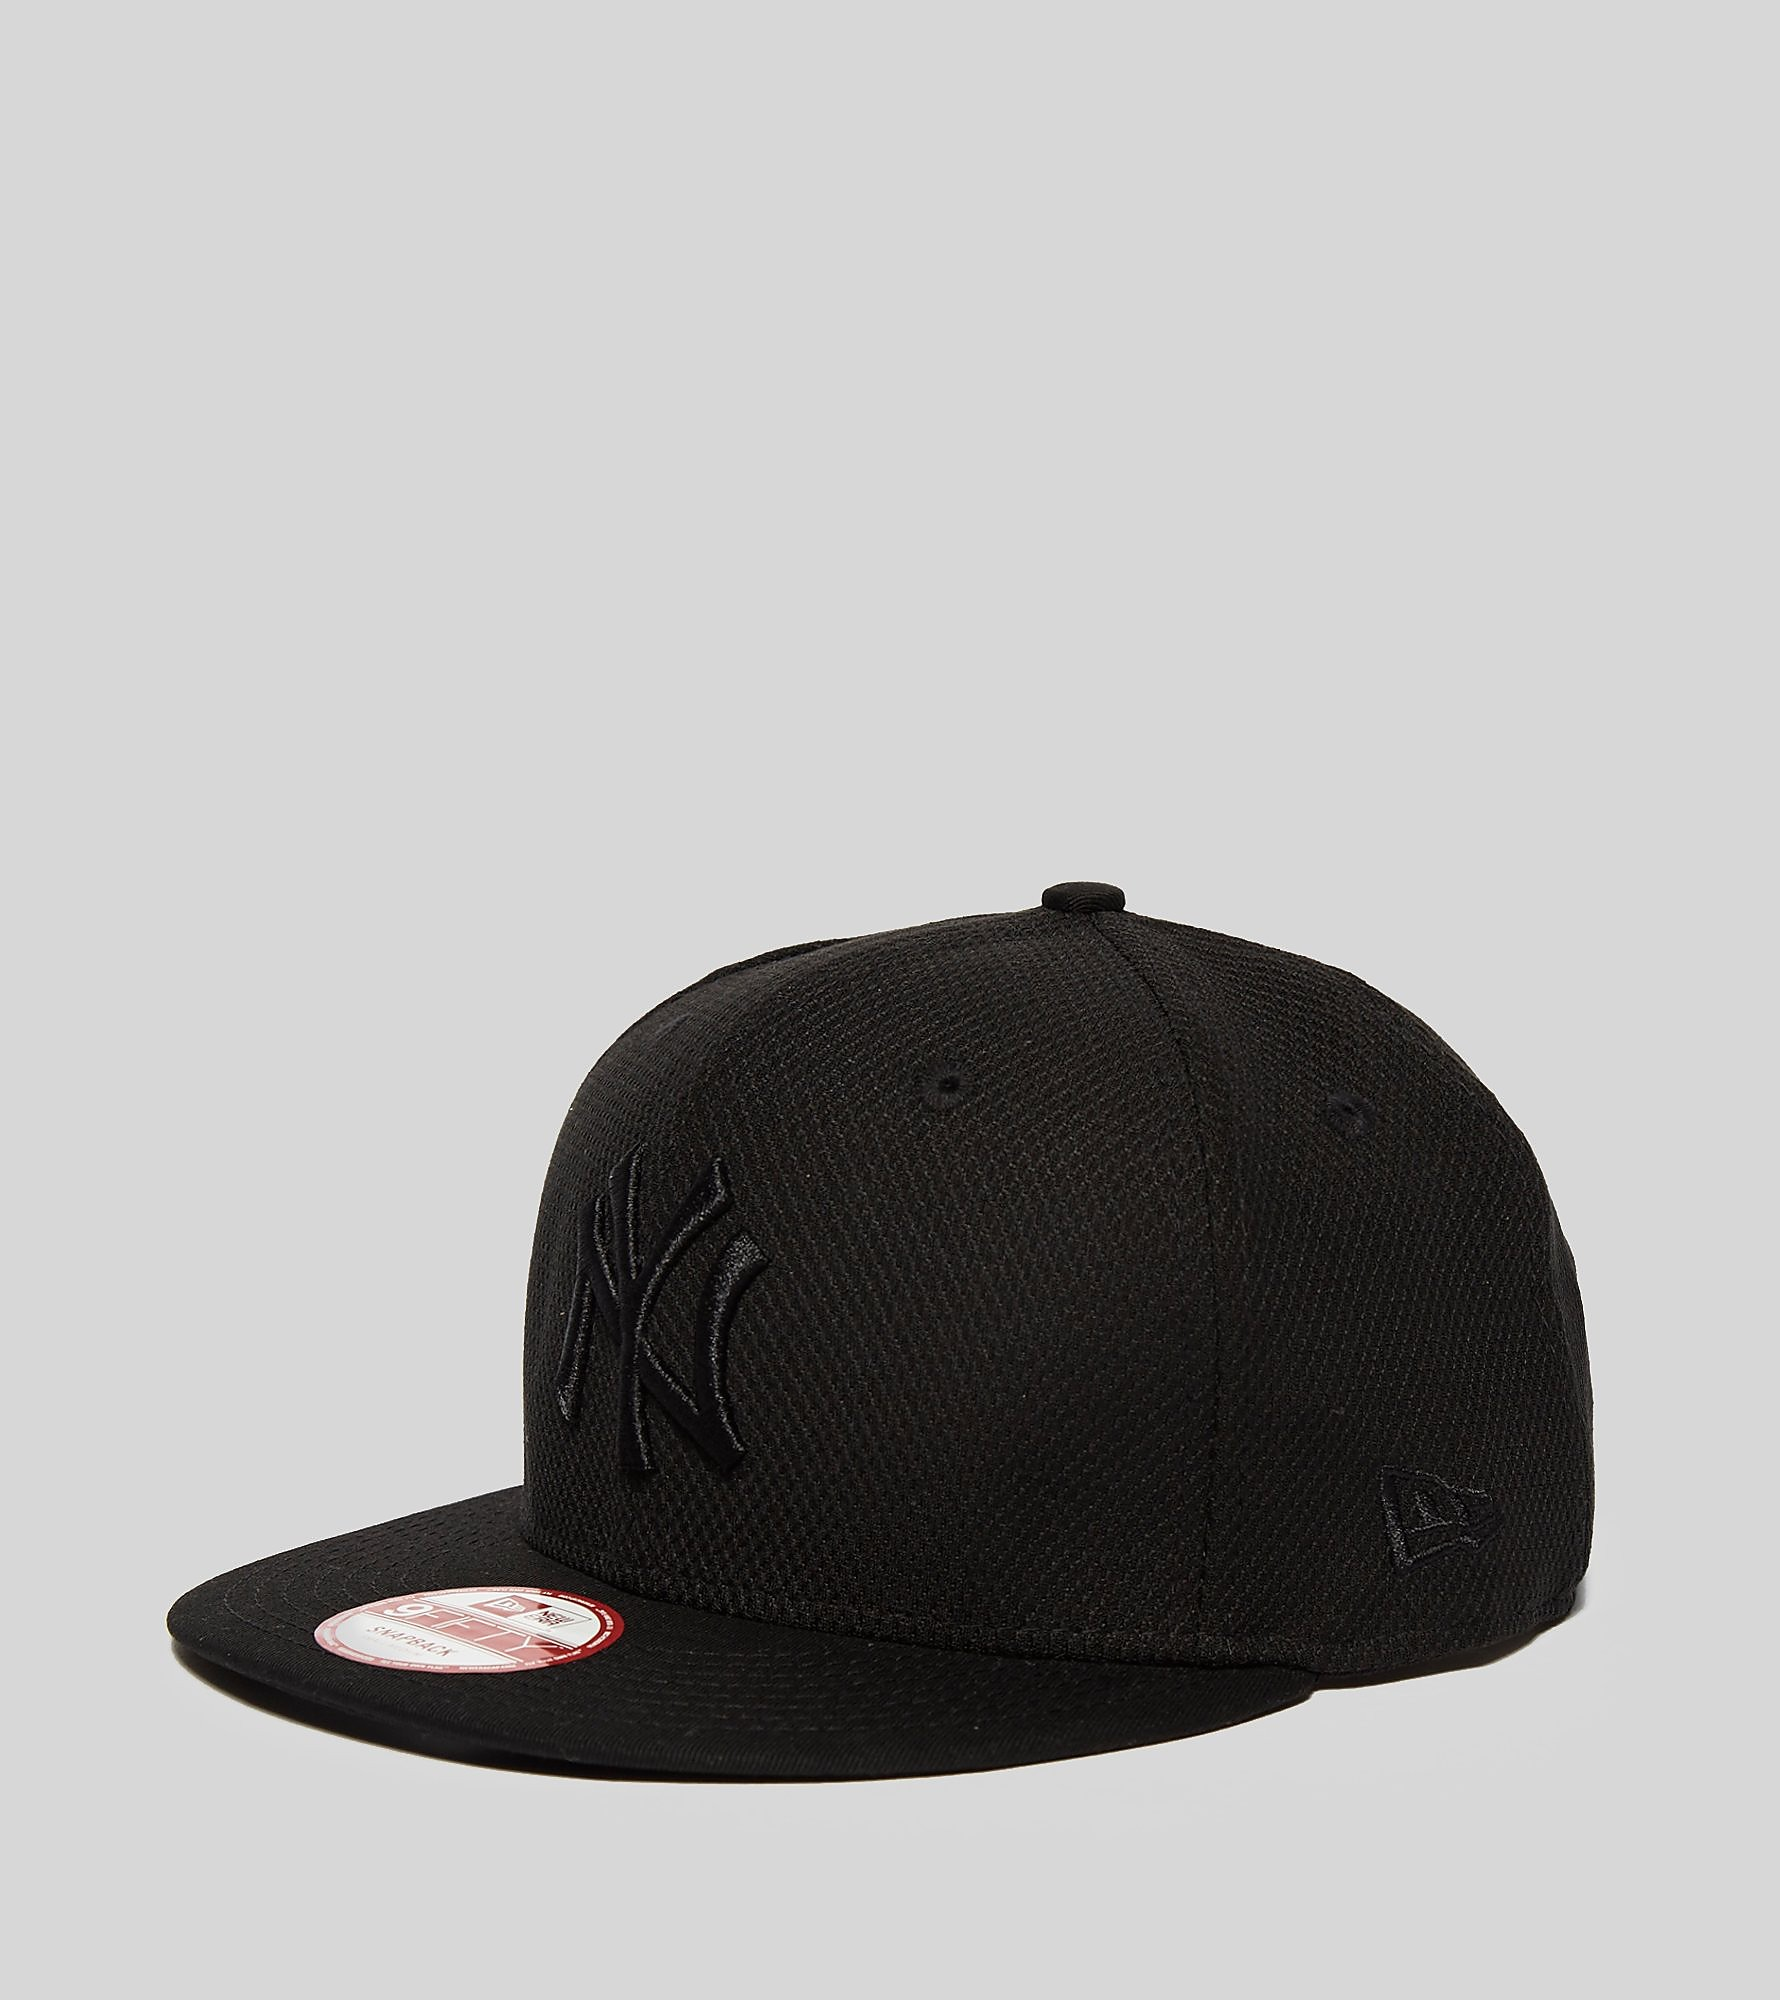 New Era 9FIFTY Diamond Era Snapback Cap